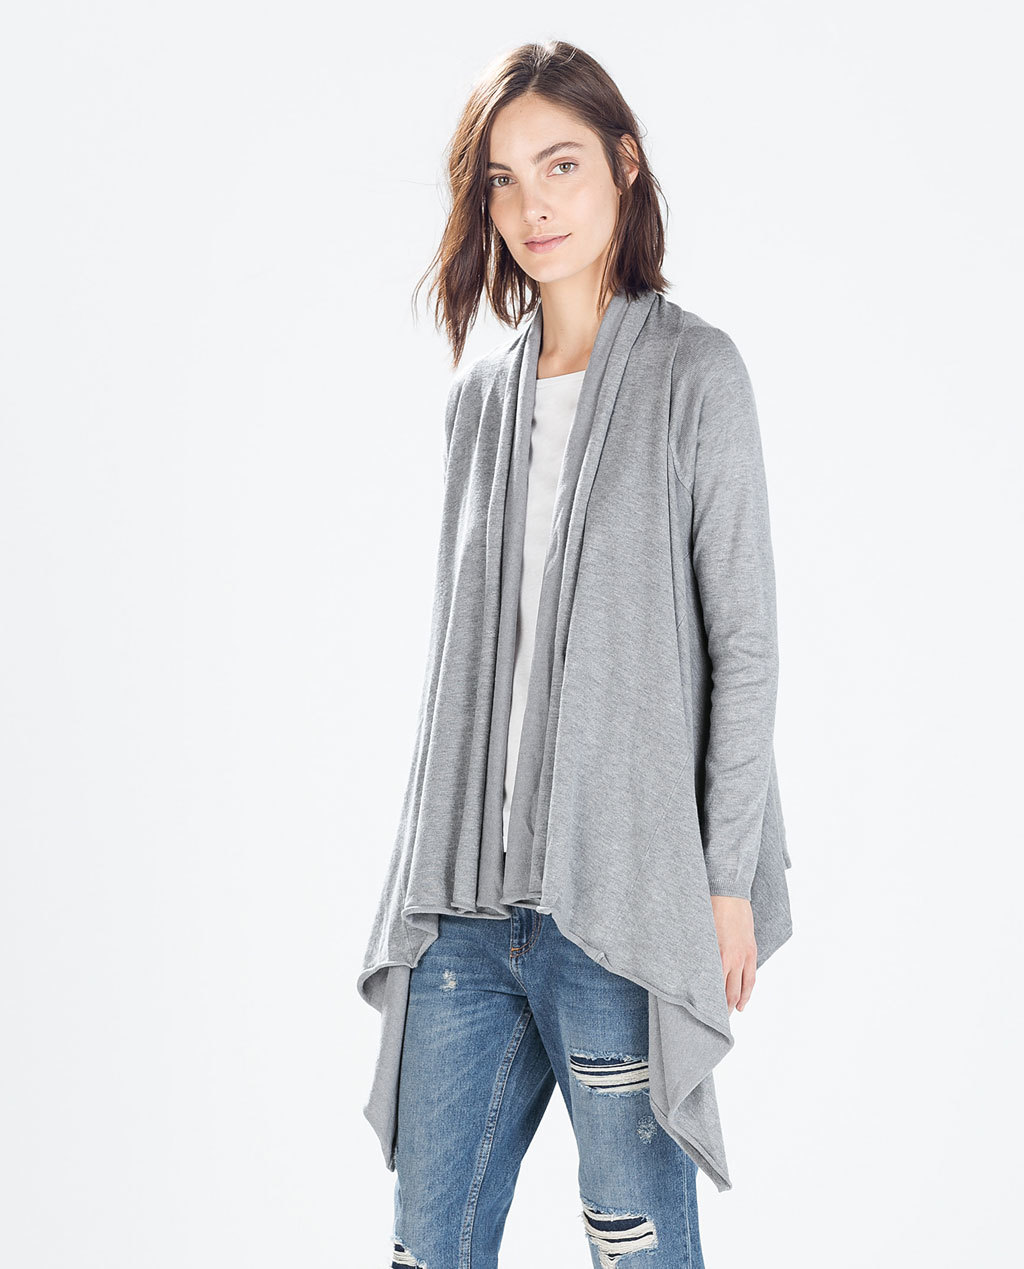 Jacket With Pointed Front - pattern: plain; collar: shawl/waterfall; fit: loose; predominant colour: light grey; occasions: casual, creative work; length: standard; back detail: longer hem at back than at front; sleeve length: long sleeve; sleeve style: standard; collar break: low/open; pattern type: fabric; texture group: jersey - stretchy/drapey; fibres: viscose/rayon - mix; style: fluid/kimono; season: s/s 2015; wardrobe: basic